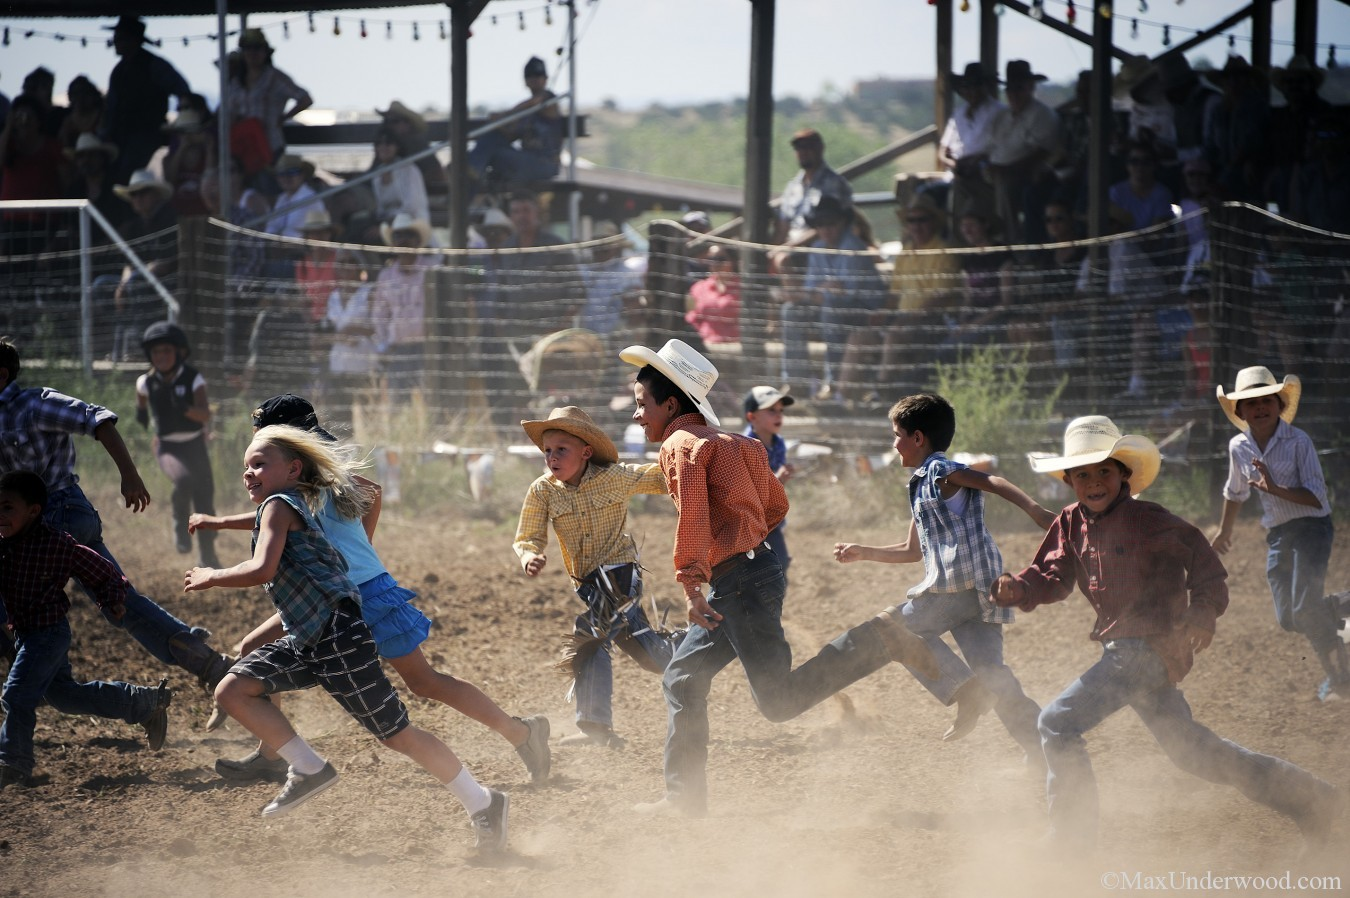 Kids running at Galisteo Rodeo, New Mexico, calf chasing, children at play